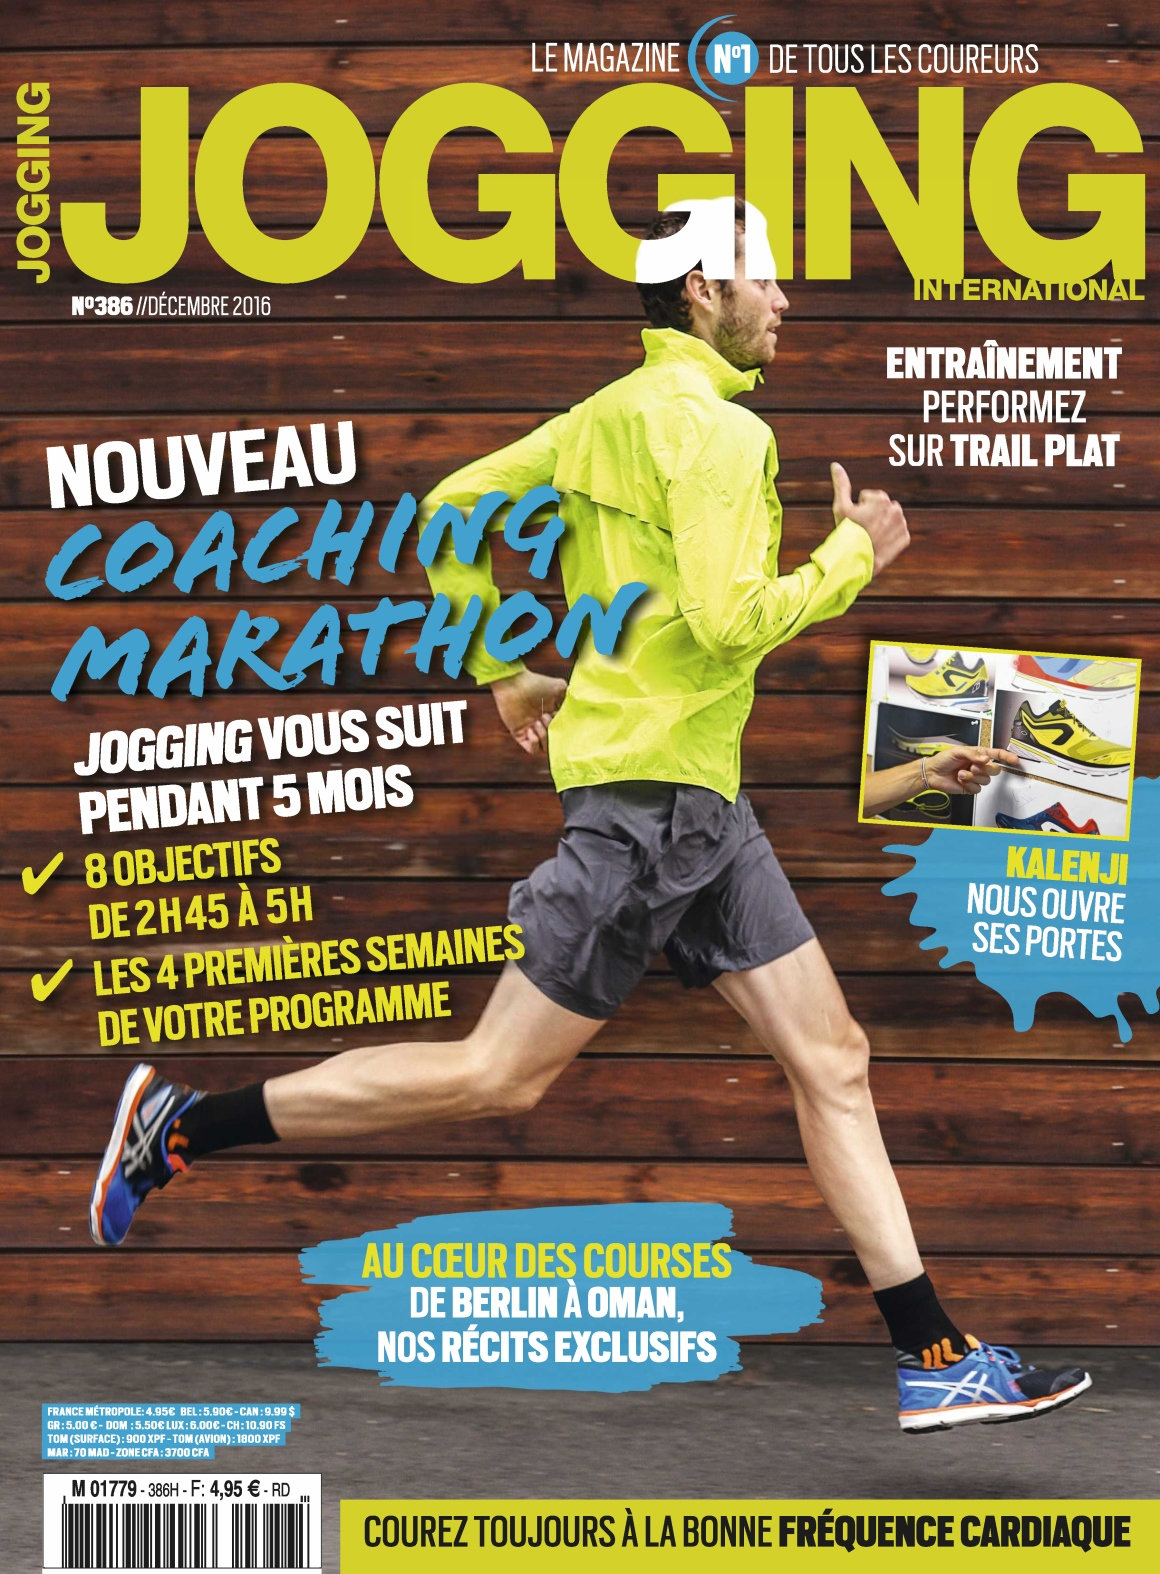 Jogging International 386 - Décembre 2016